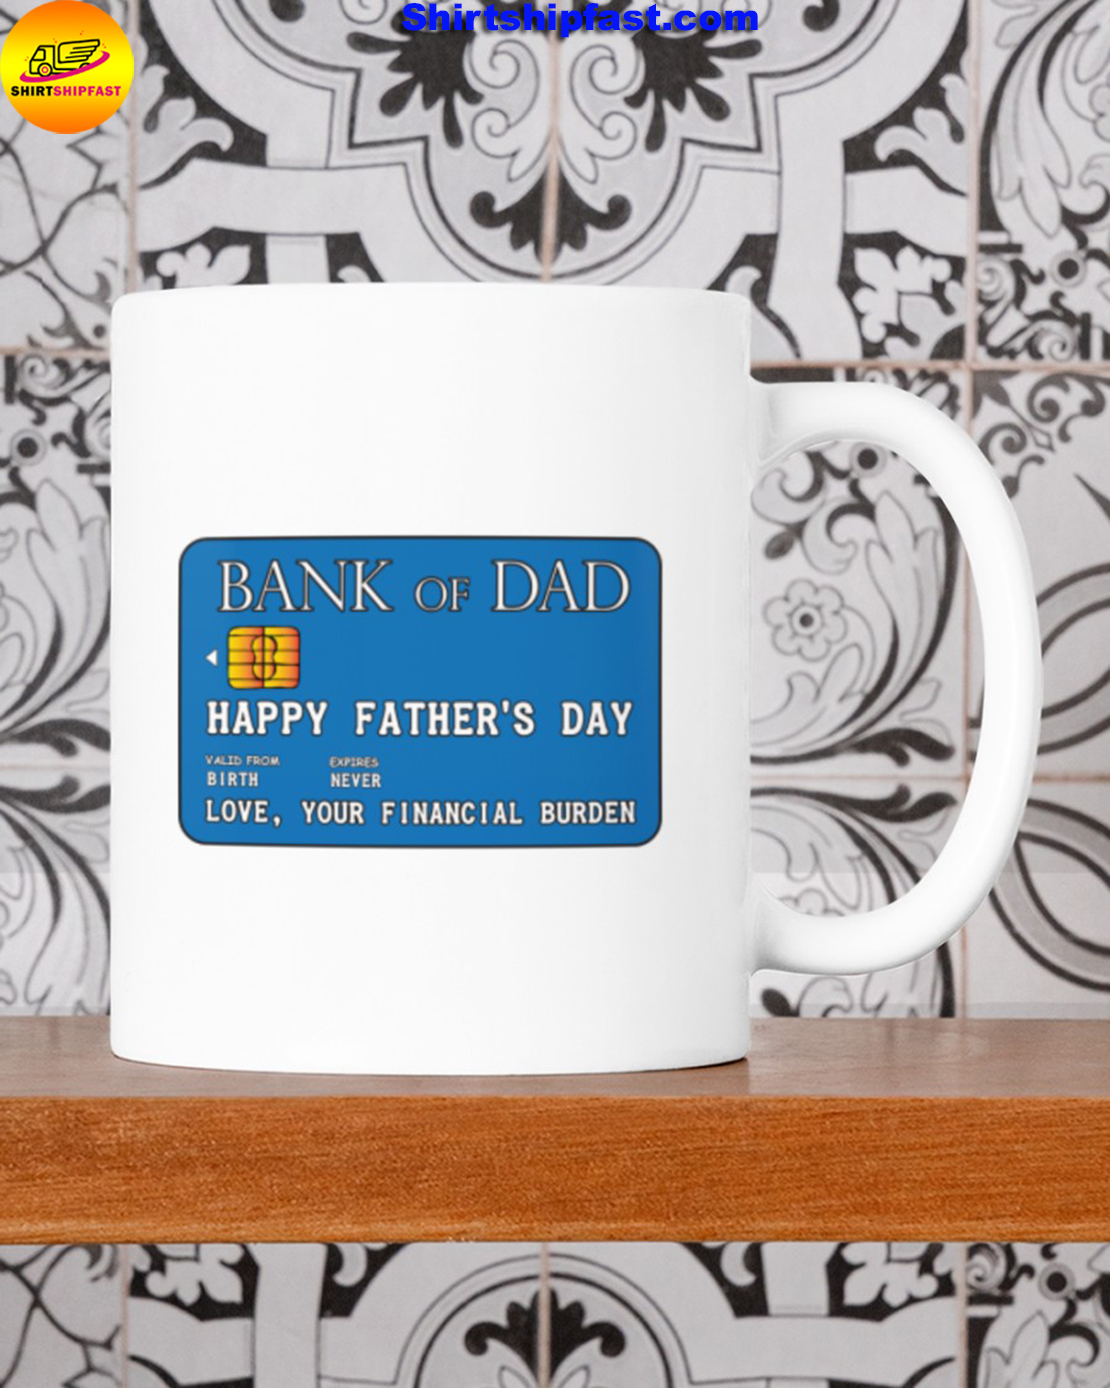 Bank of dad Happy father's day mug - Picture 2